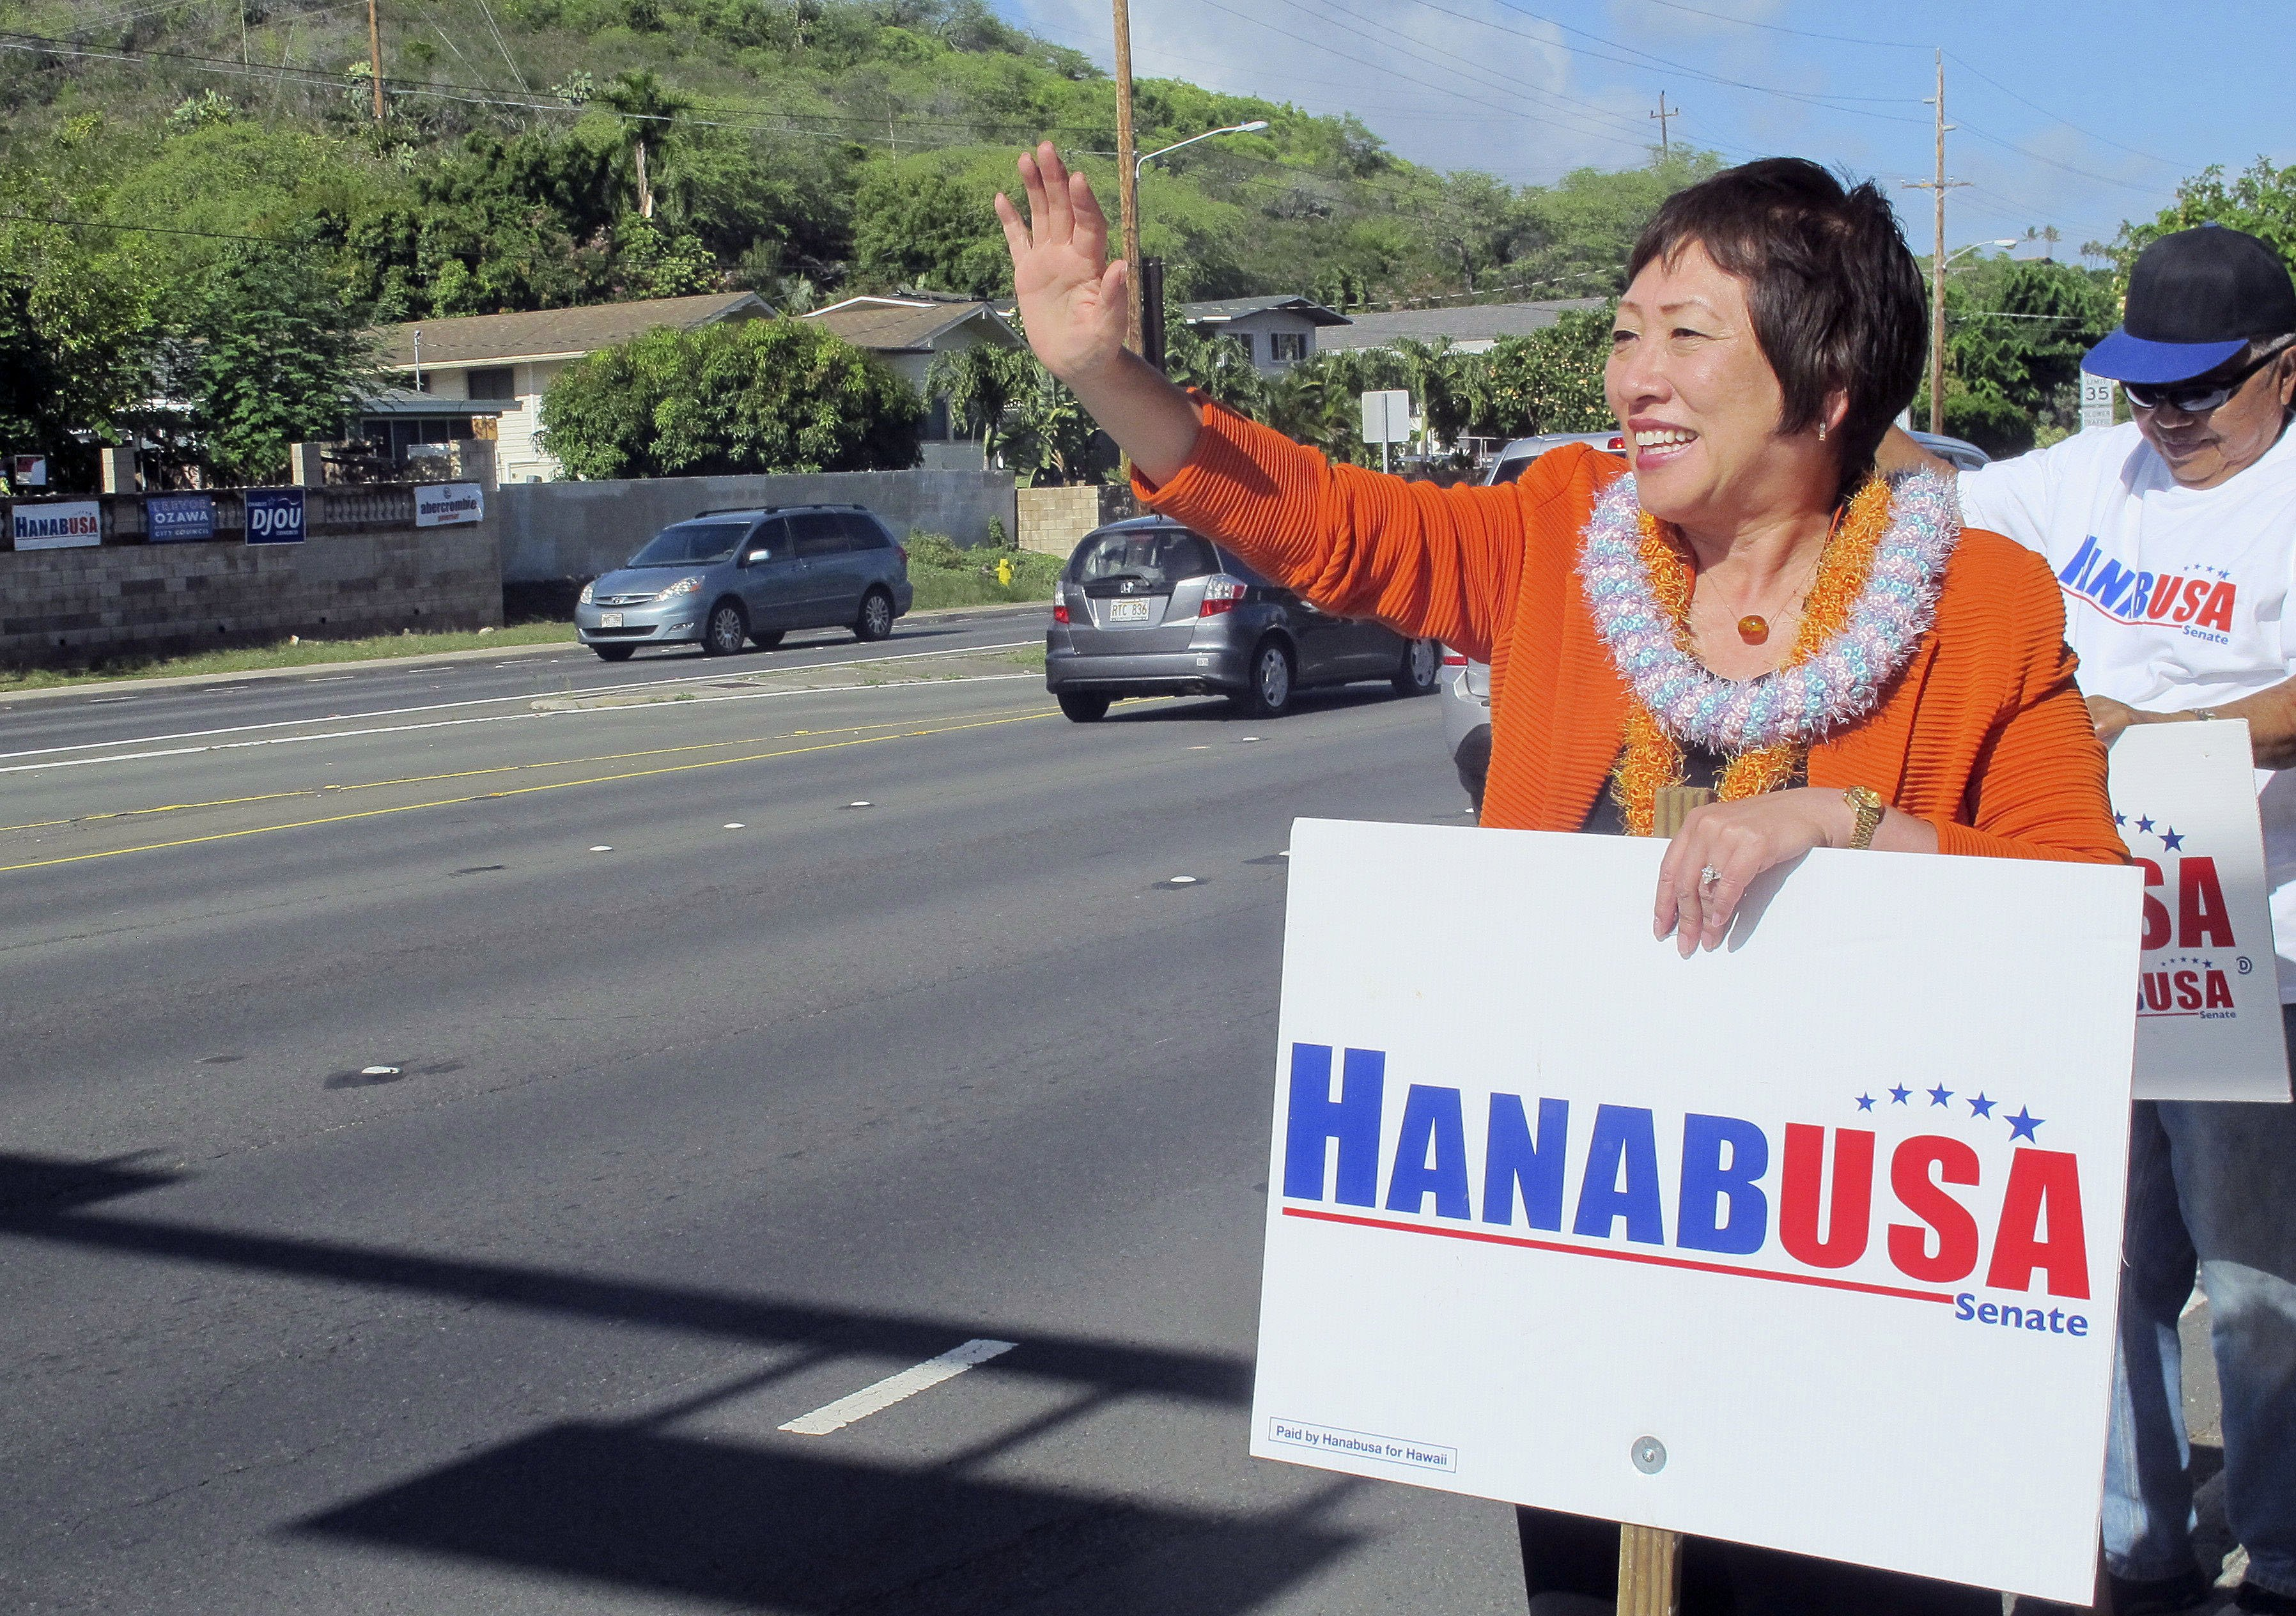 U.S. Rep. Colleen Hanabusa waves at drivers while campaigning for U.S. Senate in Honolulu on Aug. 4, 2014.